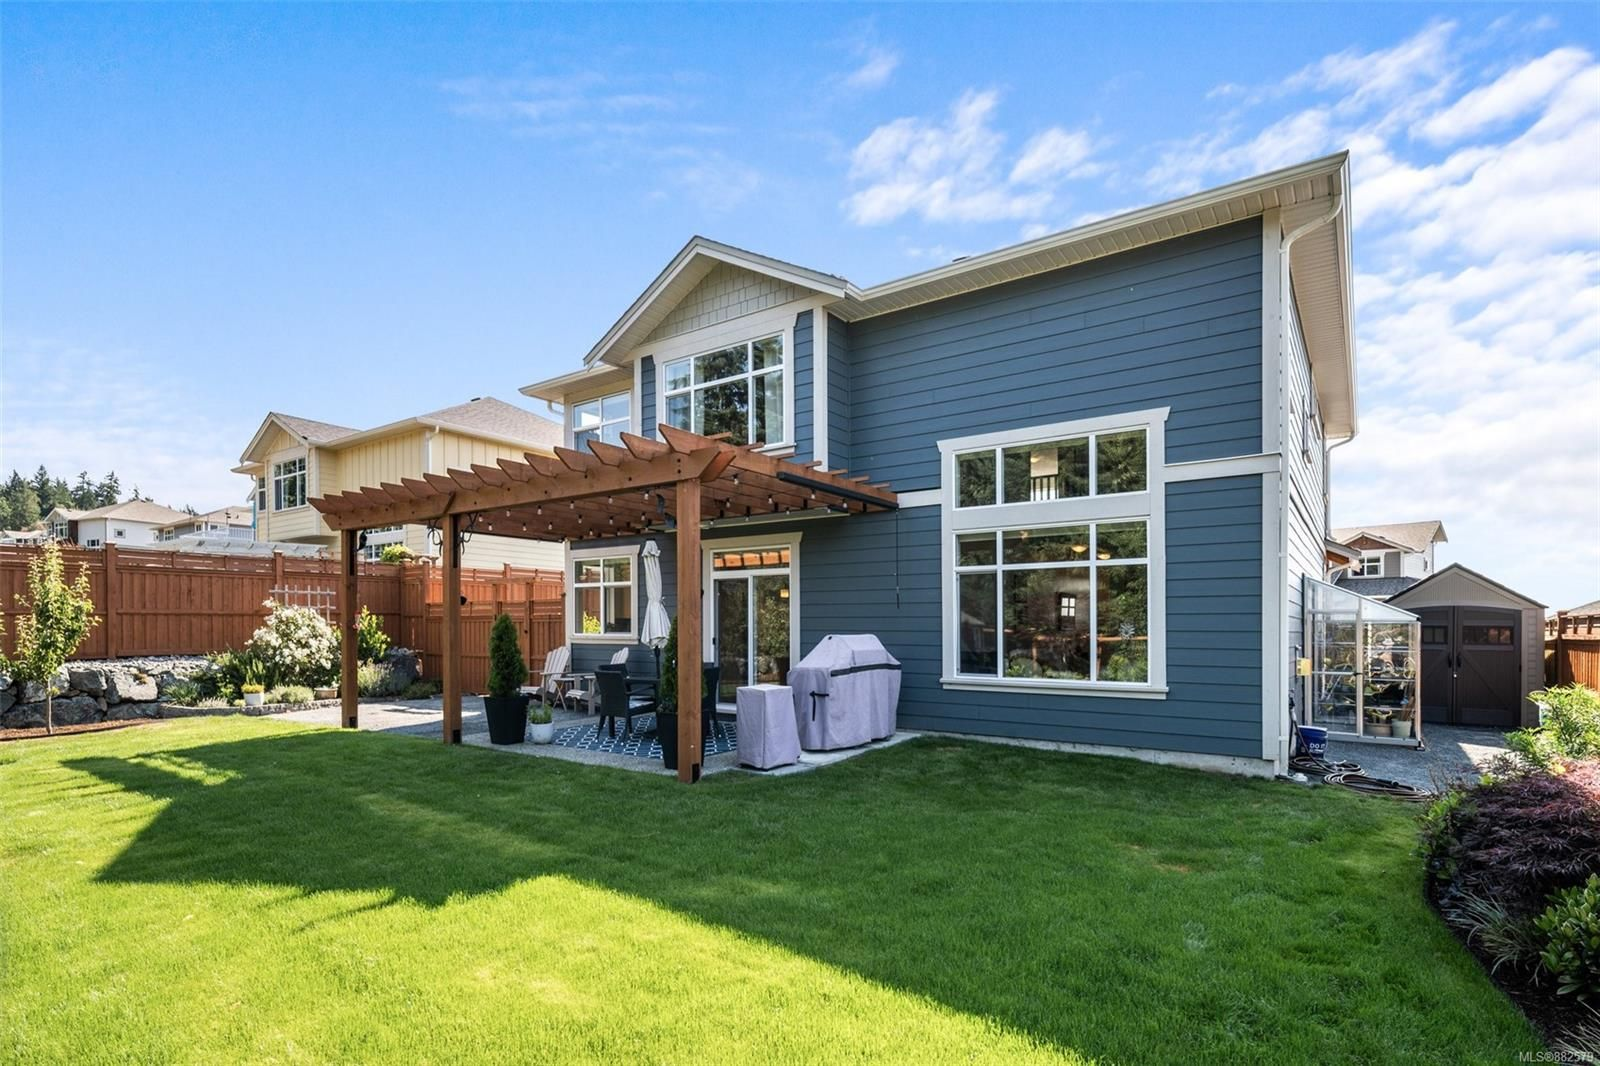 Photo 15: Photos: 2474 Anthony Pl in : Sk Sunriver House for sale (Sooke)  : MLS®# 882579